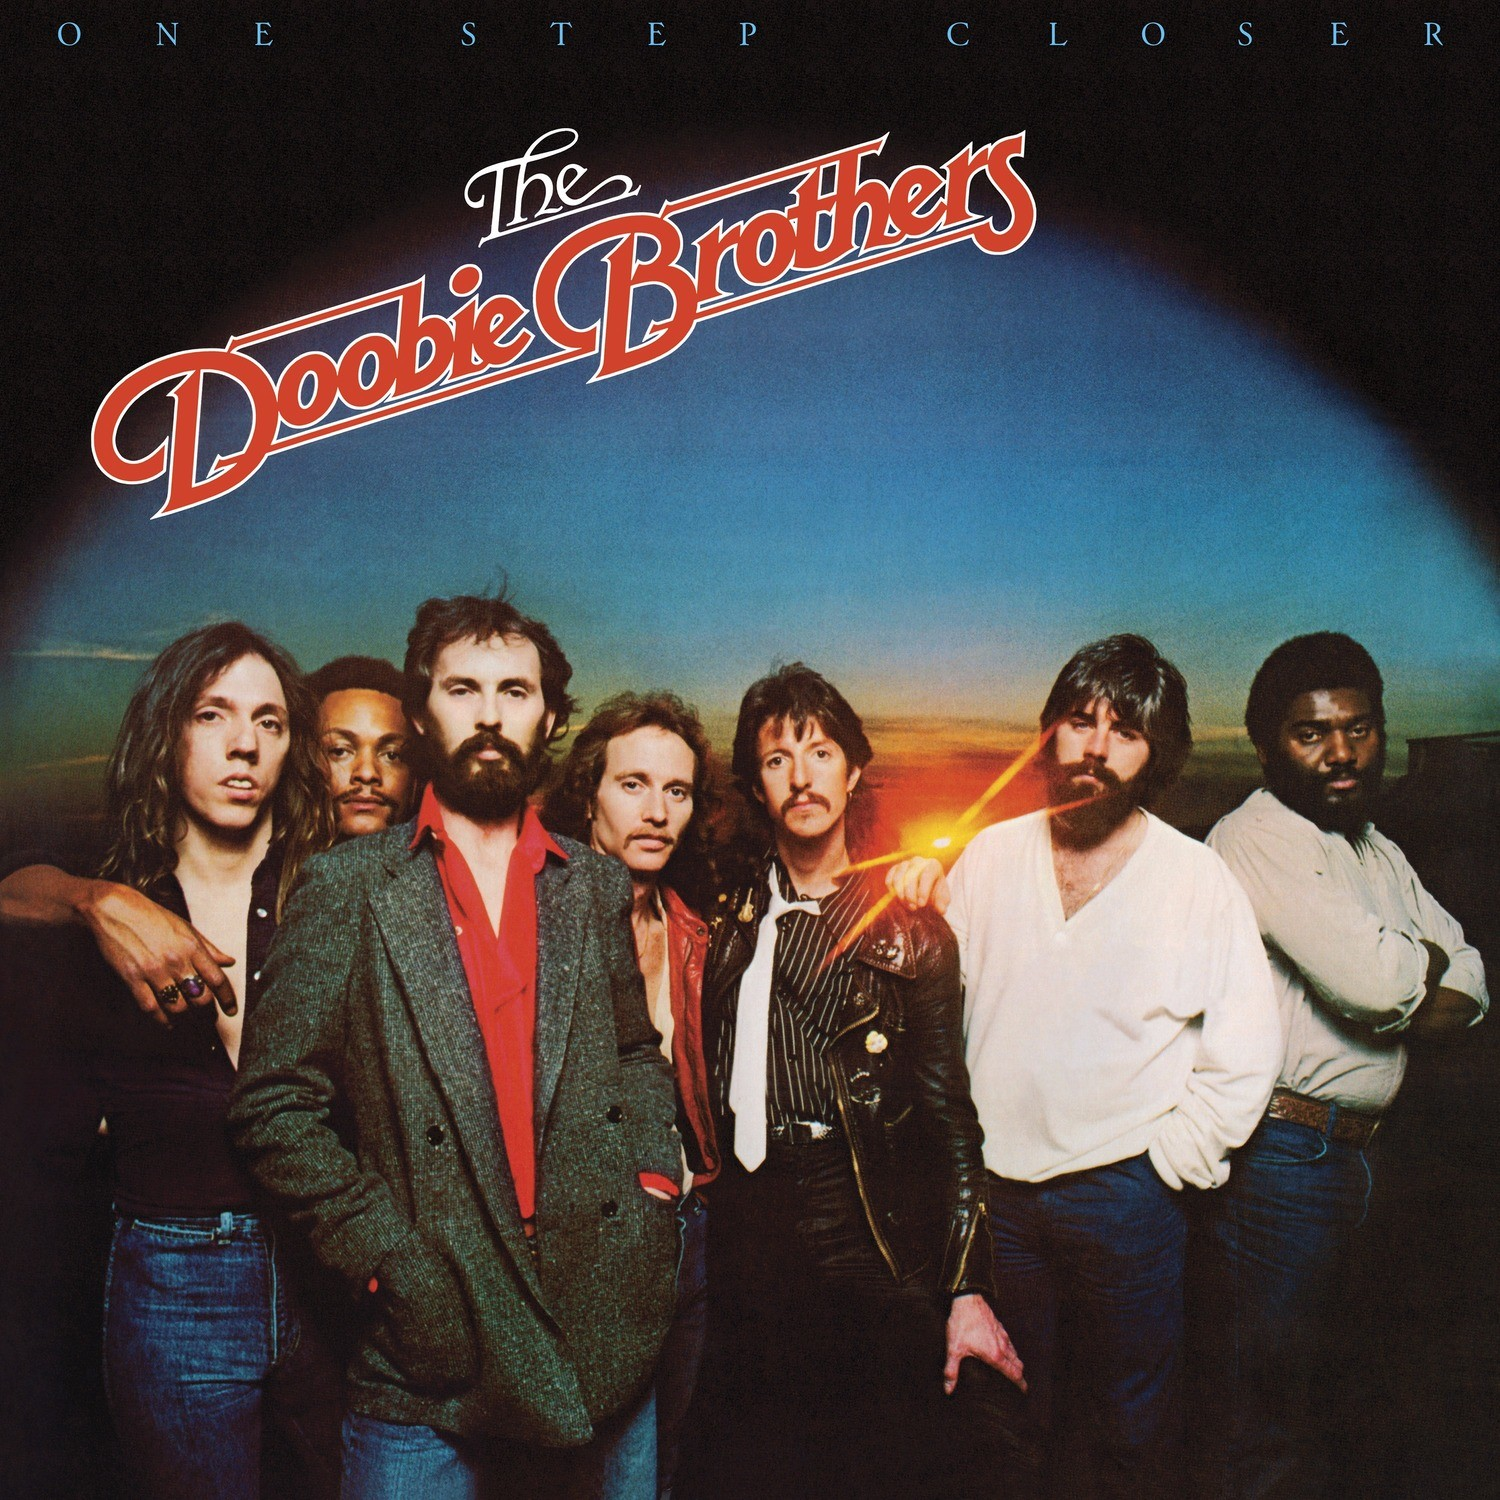 The Doobie Brothers - One Step Closer LP